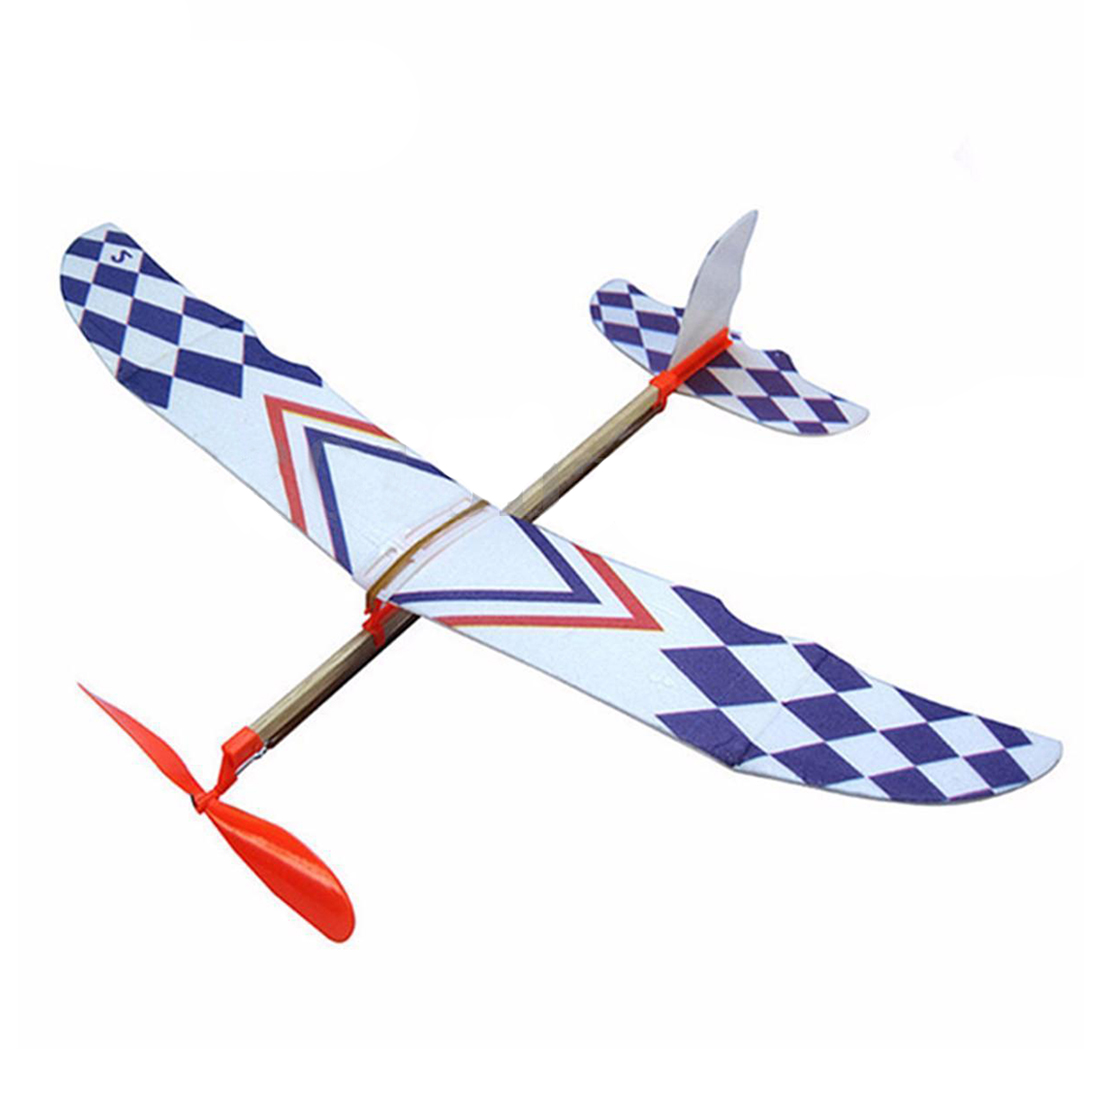 ABWE Best Sale Elastic Rubber Band Powered DIY Foam Plane Model Kit Aircraft Educational Toy